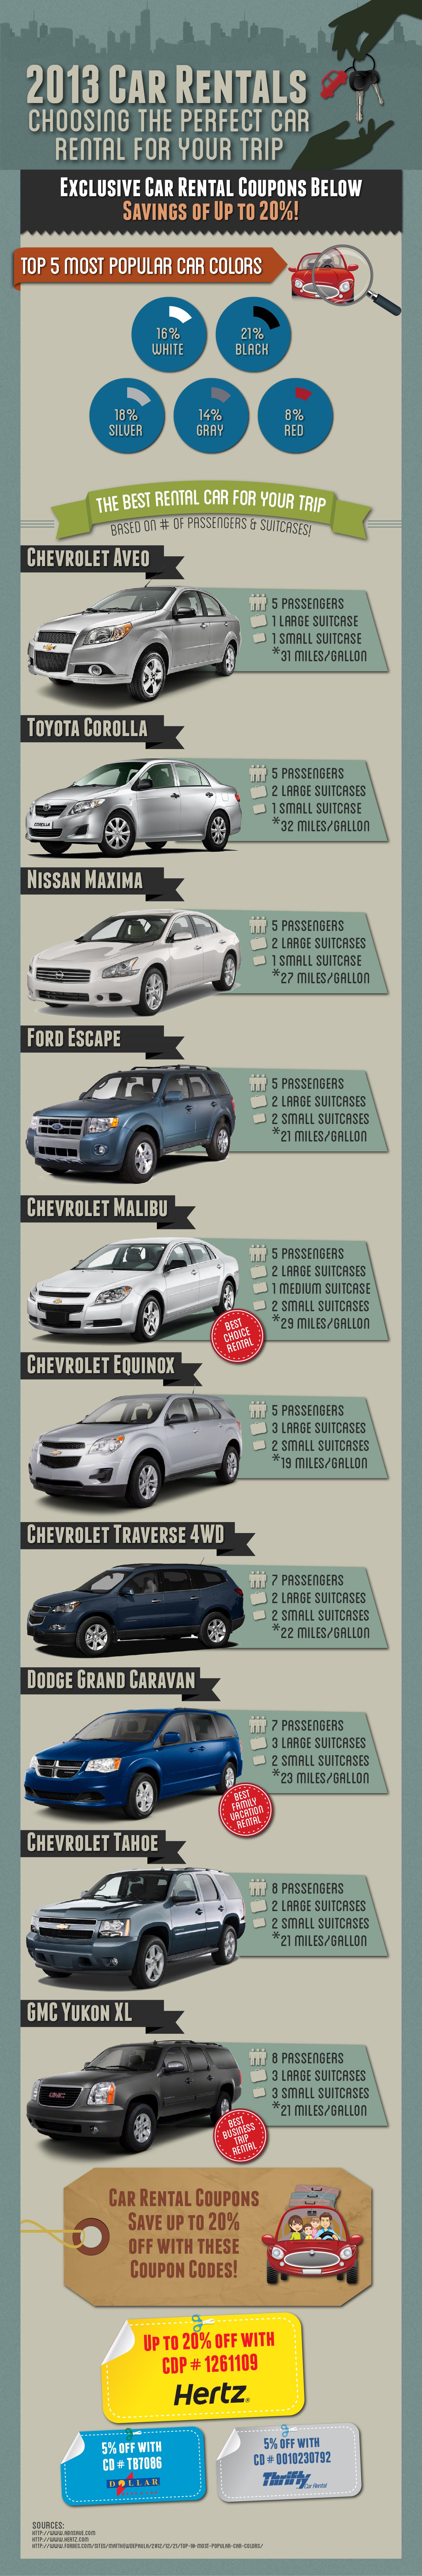 2013 Car Rentals -  Using  Hotel Coupons to Save Money on Your Next Family Vacation Infographic